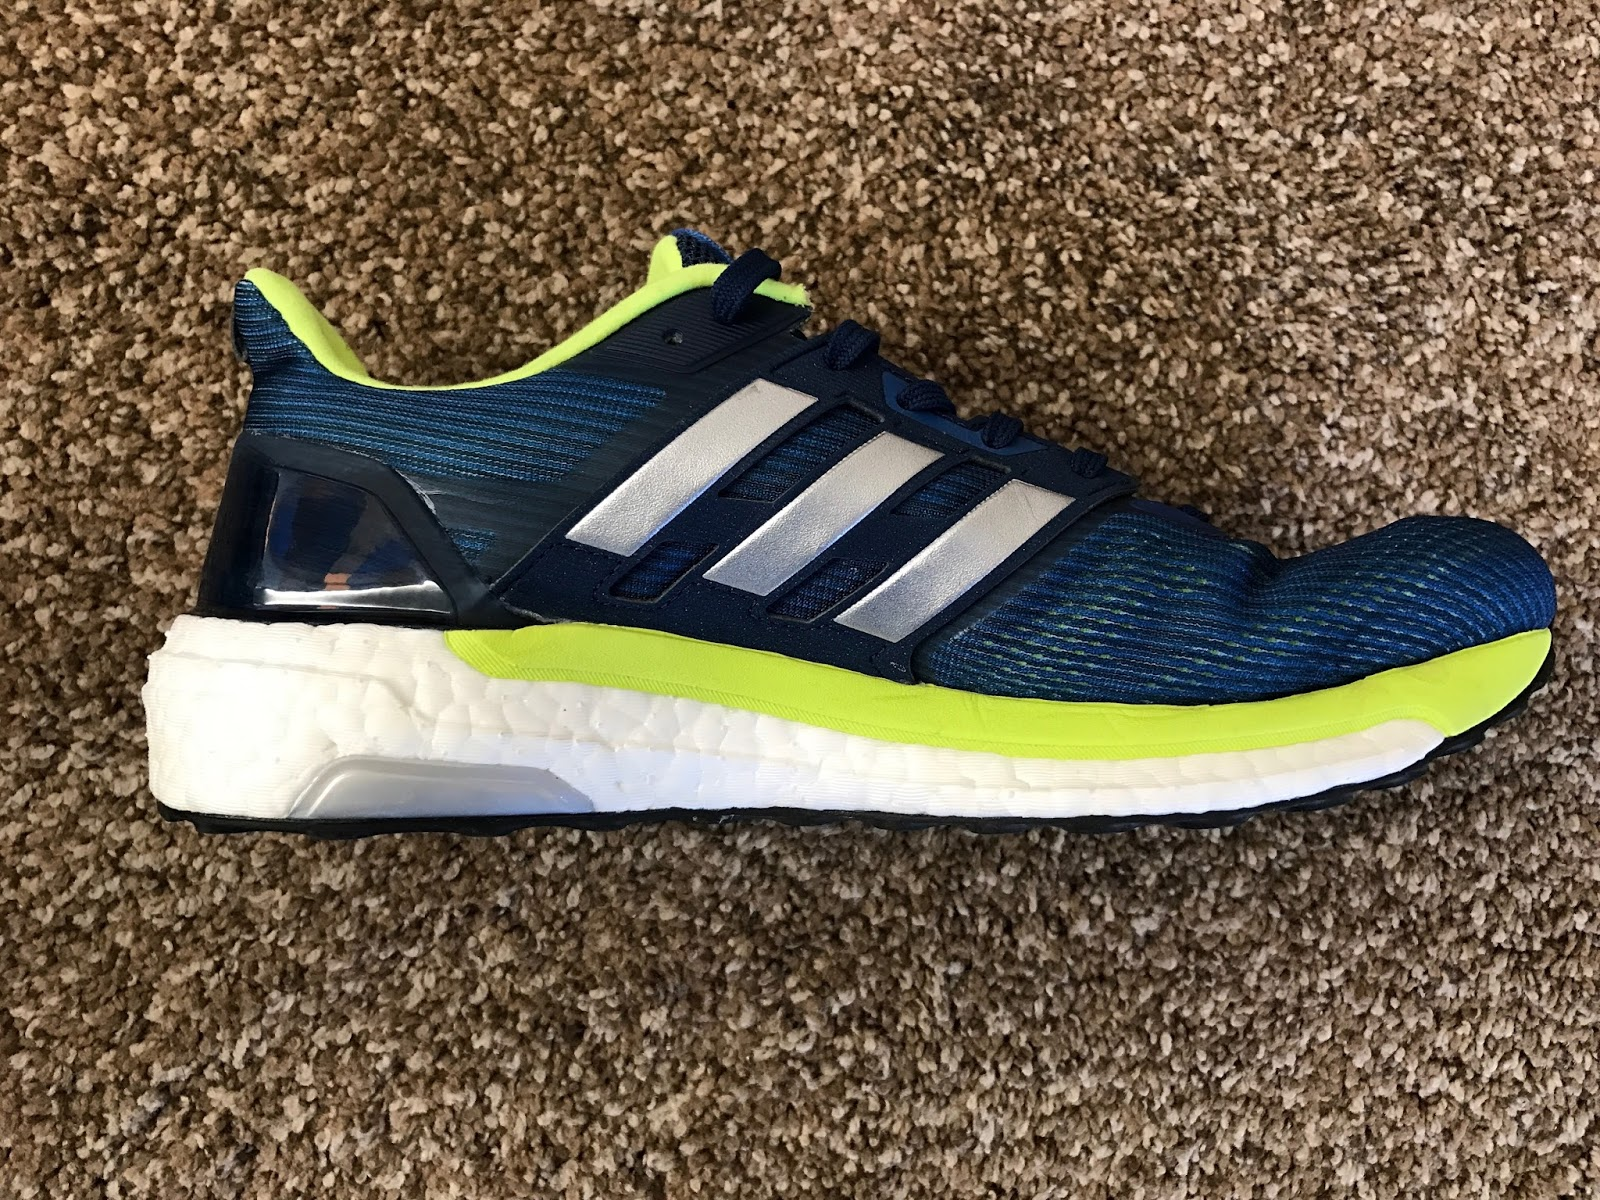 Road Trail Run  adidas Supernova Glide 9 Review  Rebounding 34c3480e792d2